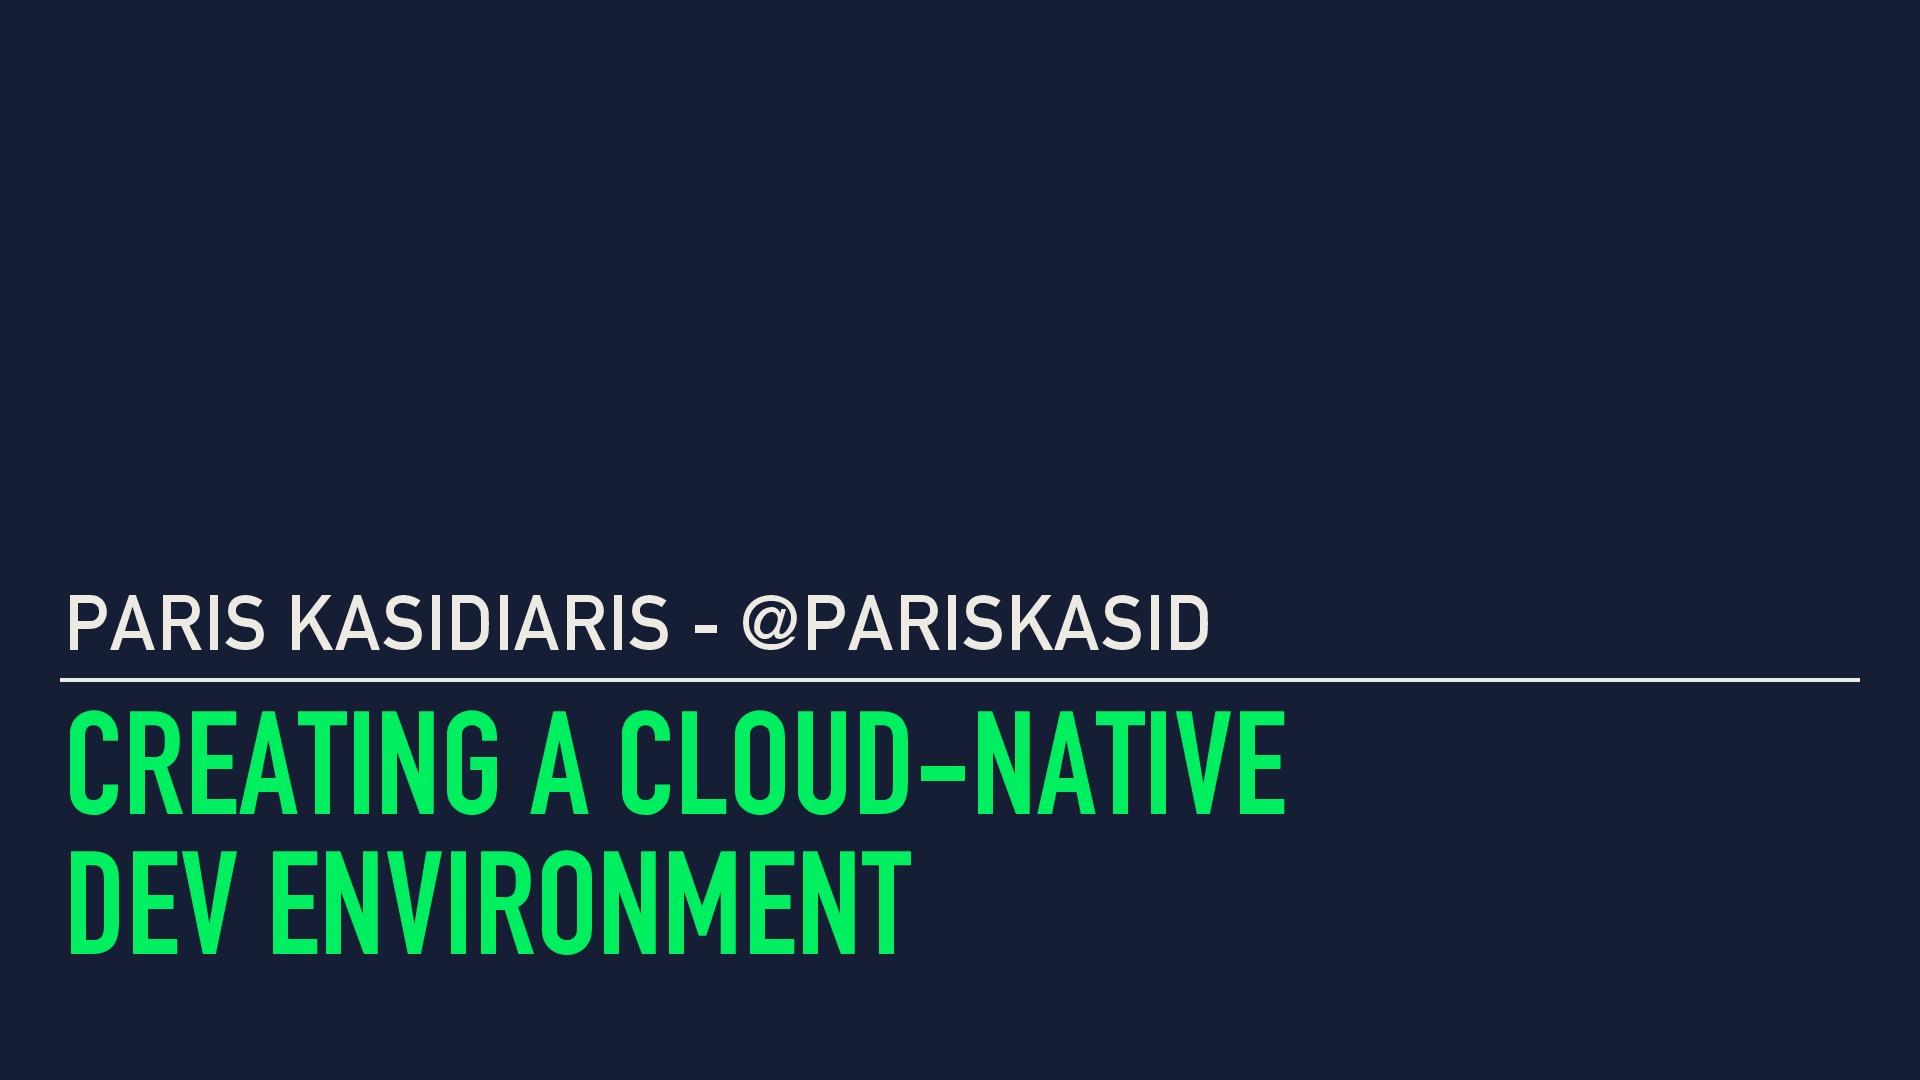 Creating a cloud-native dev environment